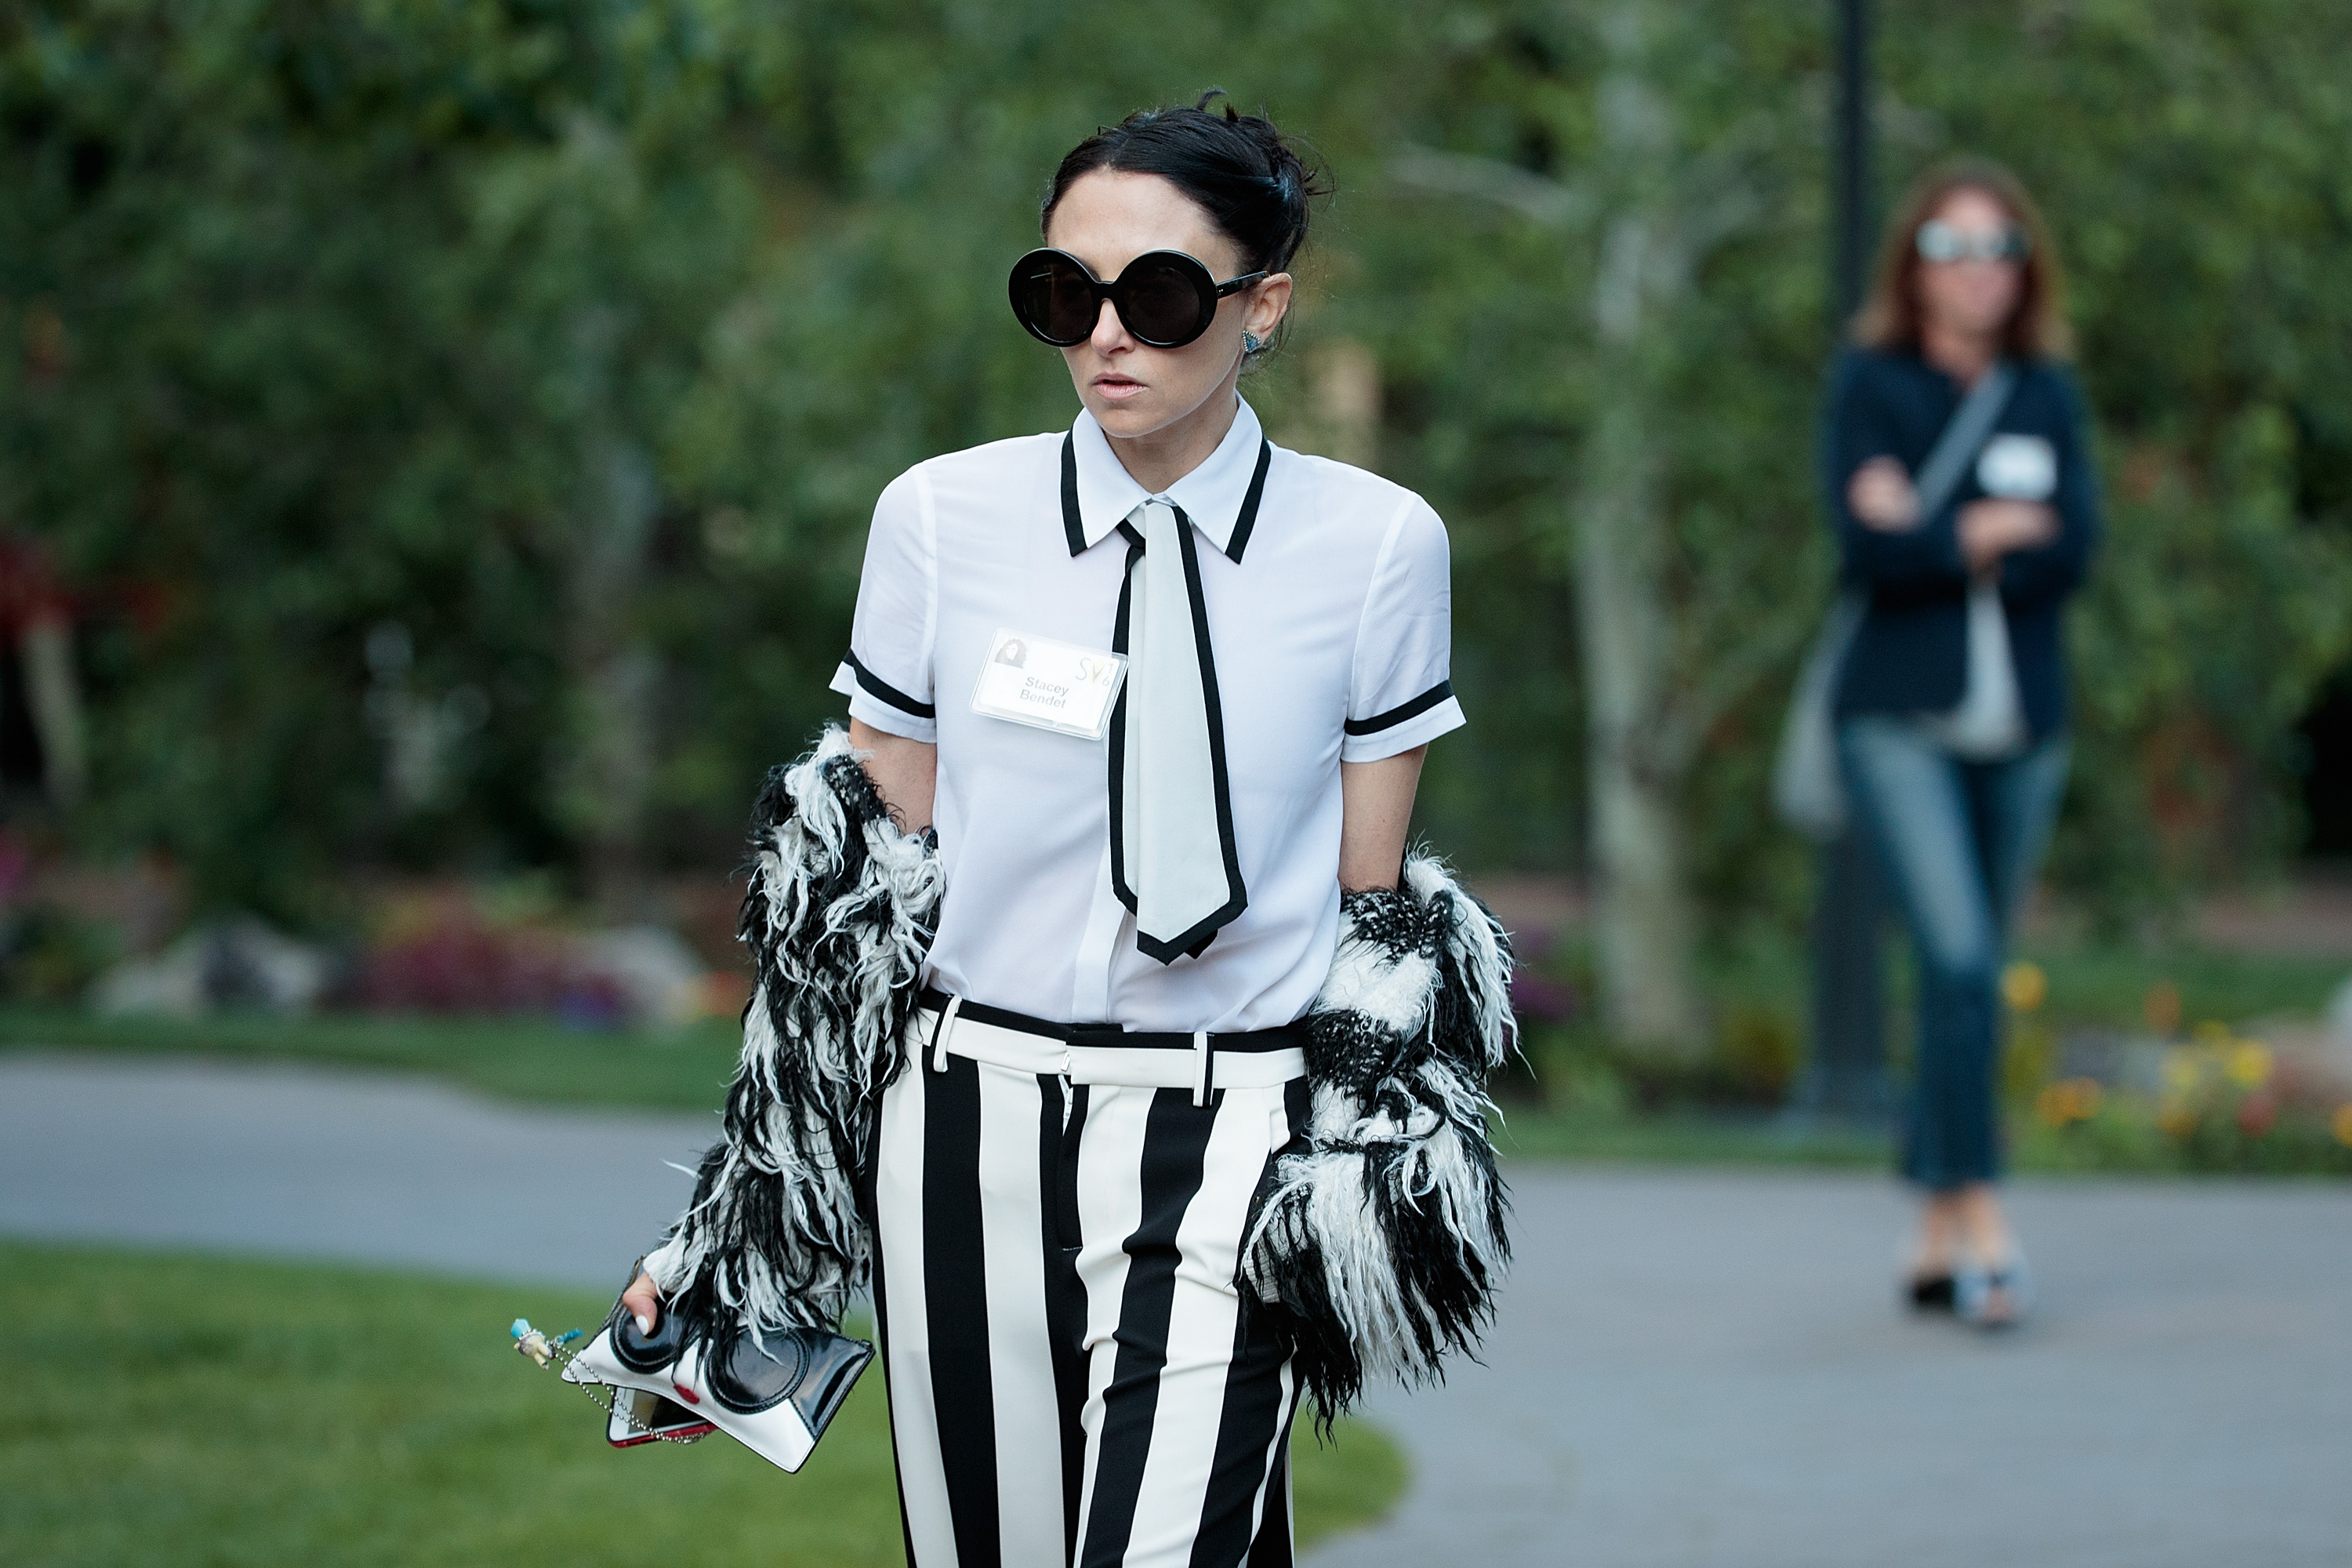 Stacey Bendet's skirt makes an important political statement at NYFW